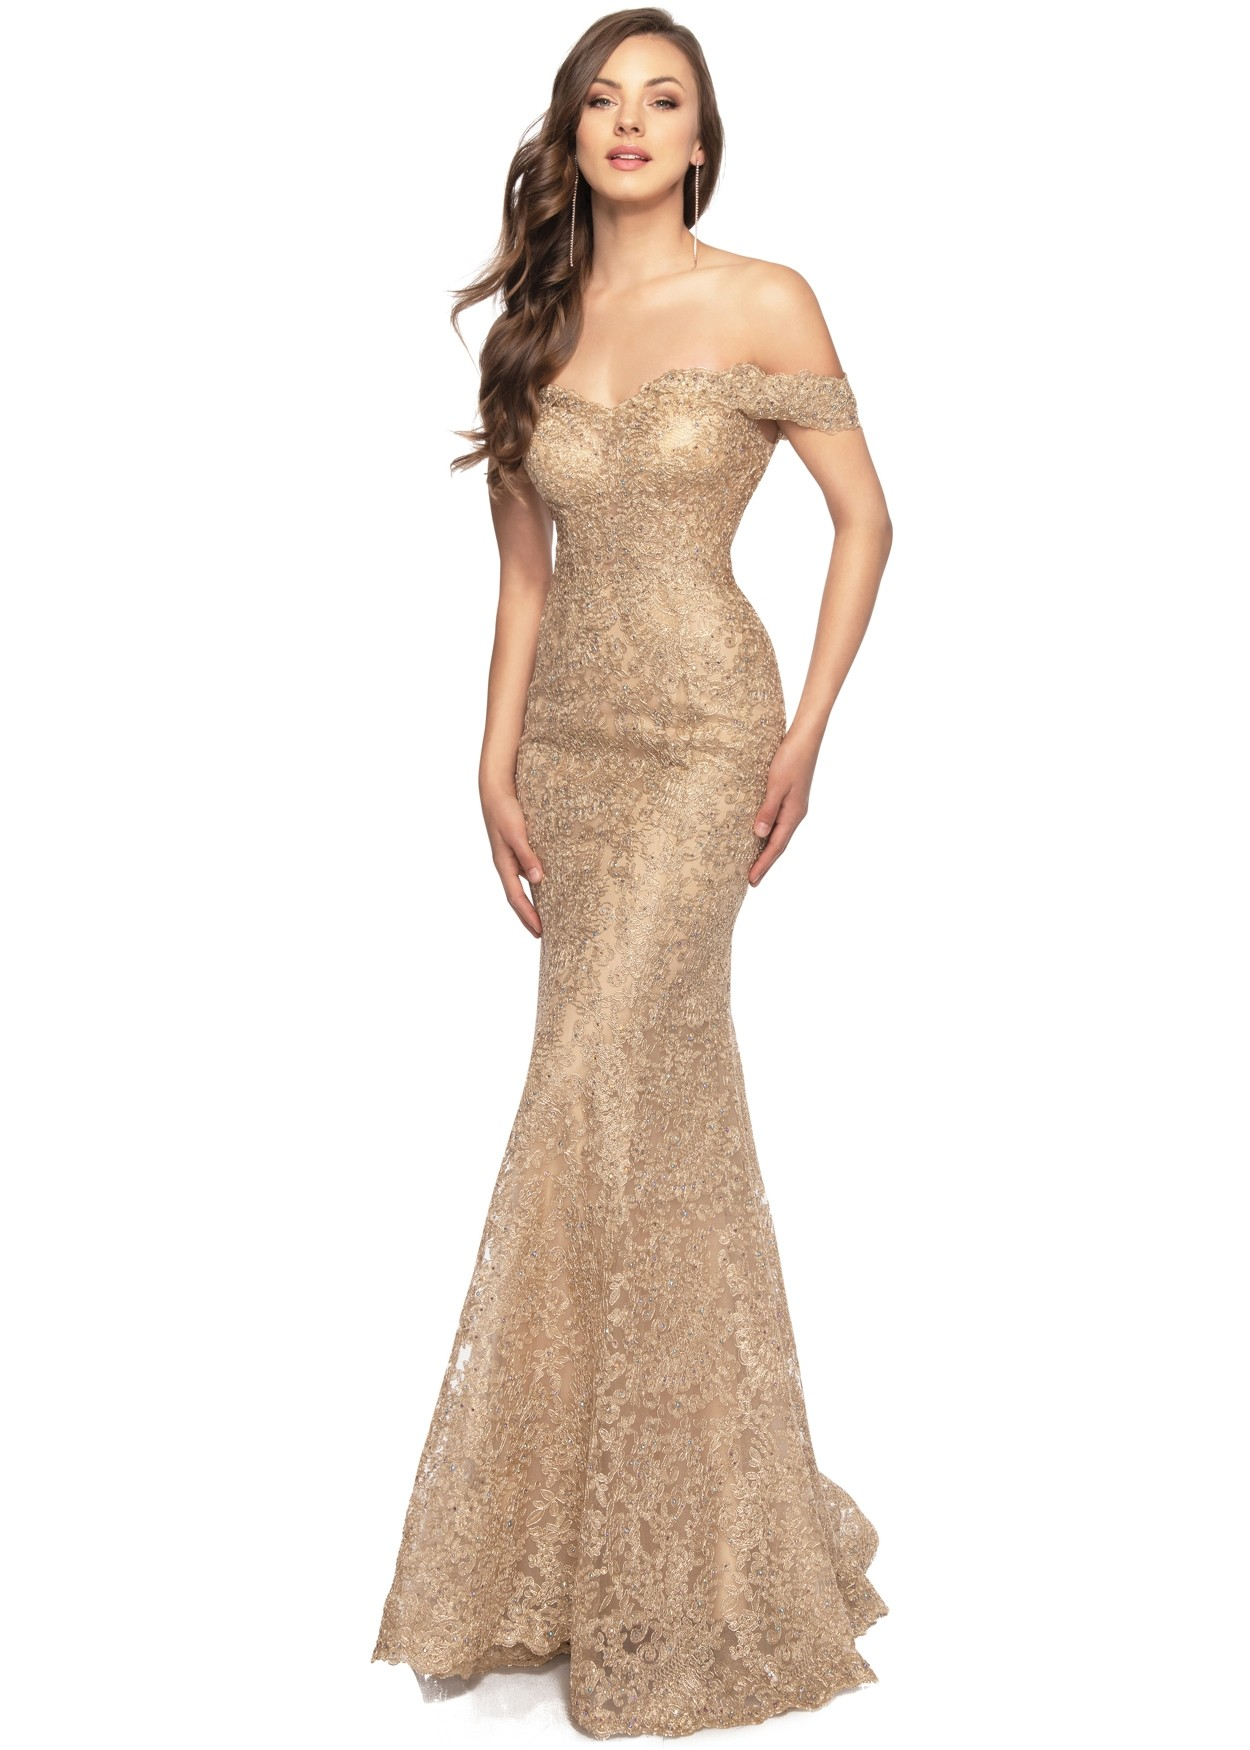 Lucci Lu 28066 Gold Metallic Lace Mermaid Gown